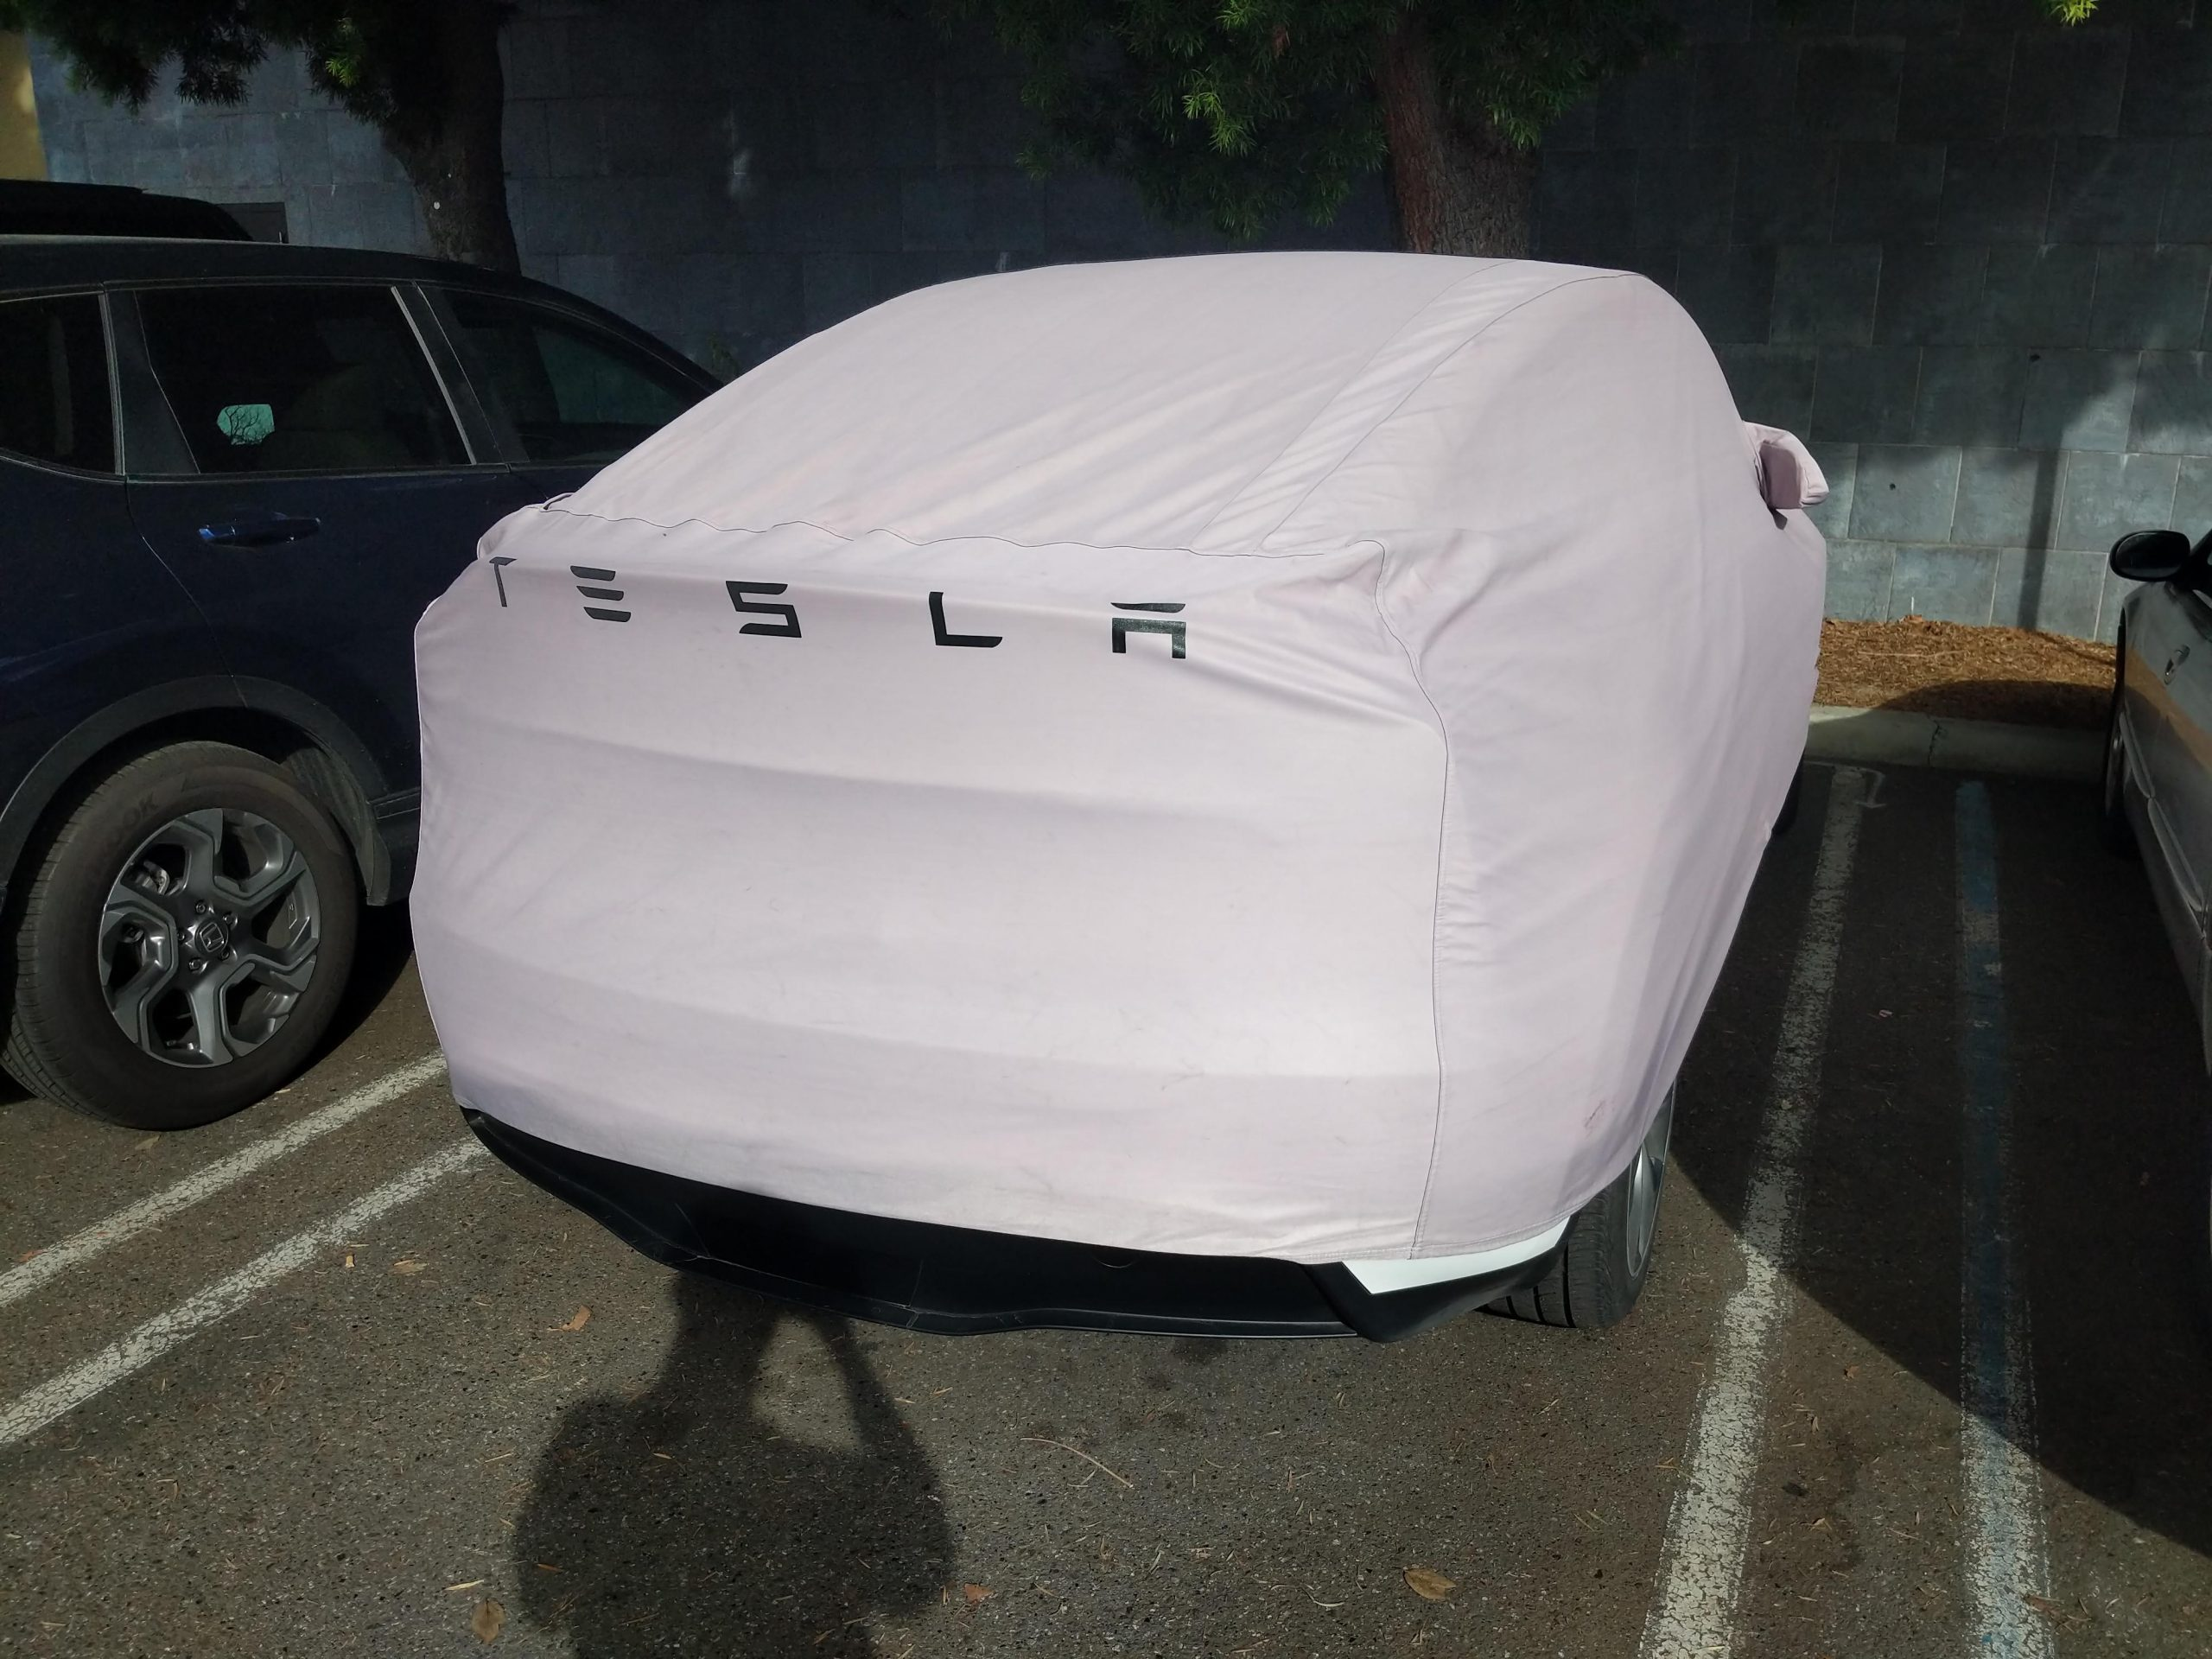 Tesla Model Y spotted in downtown Mountain View CA